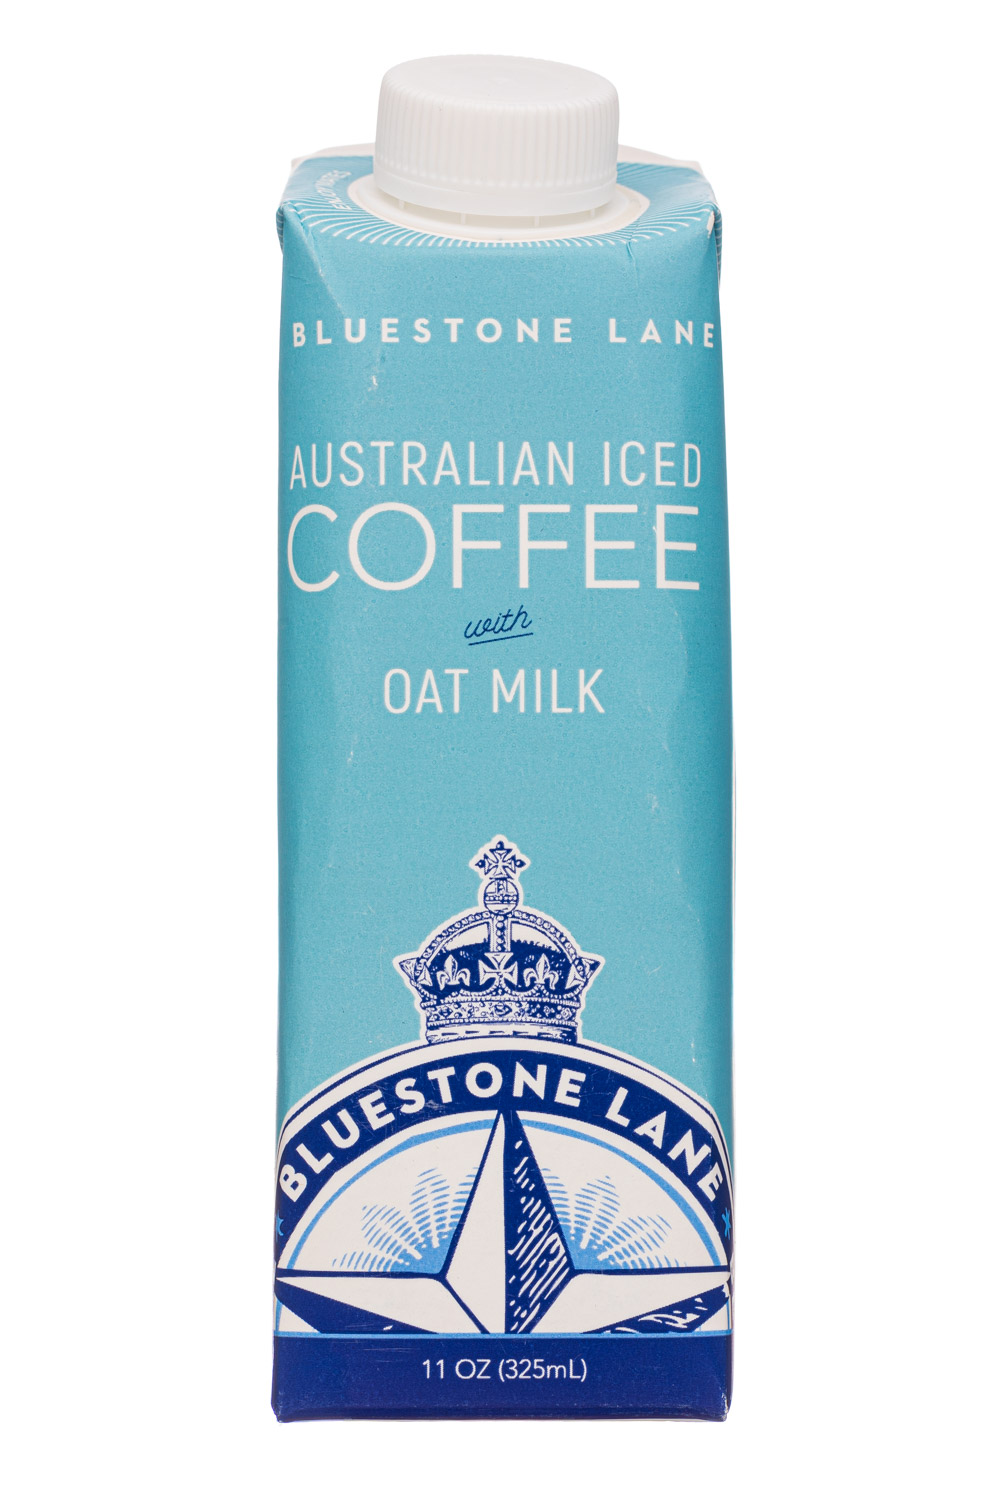 Australian Iced Coffee with Oat Milk